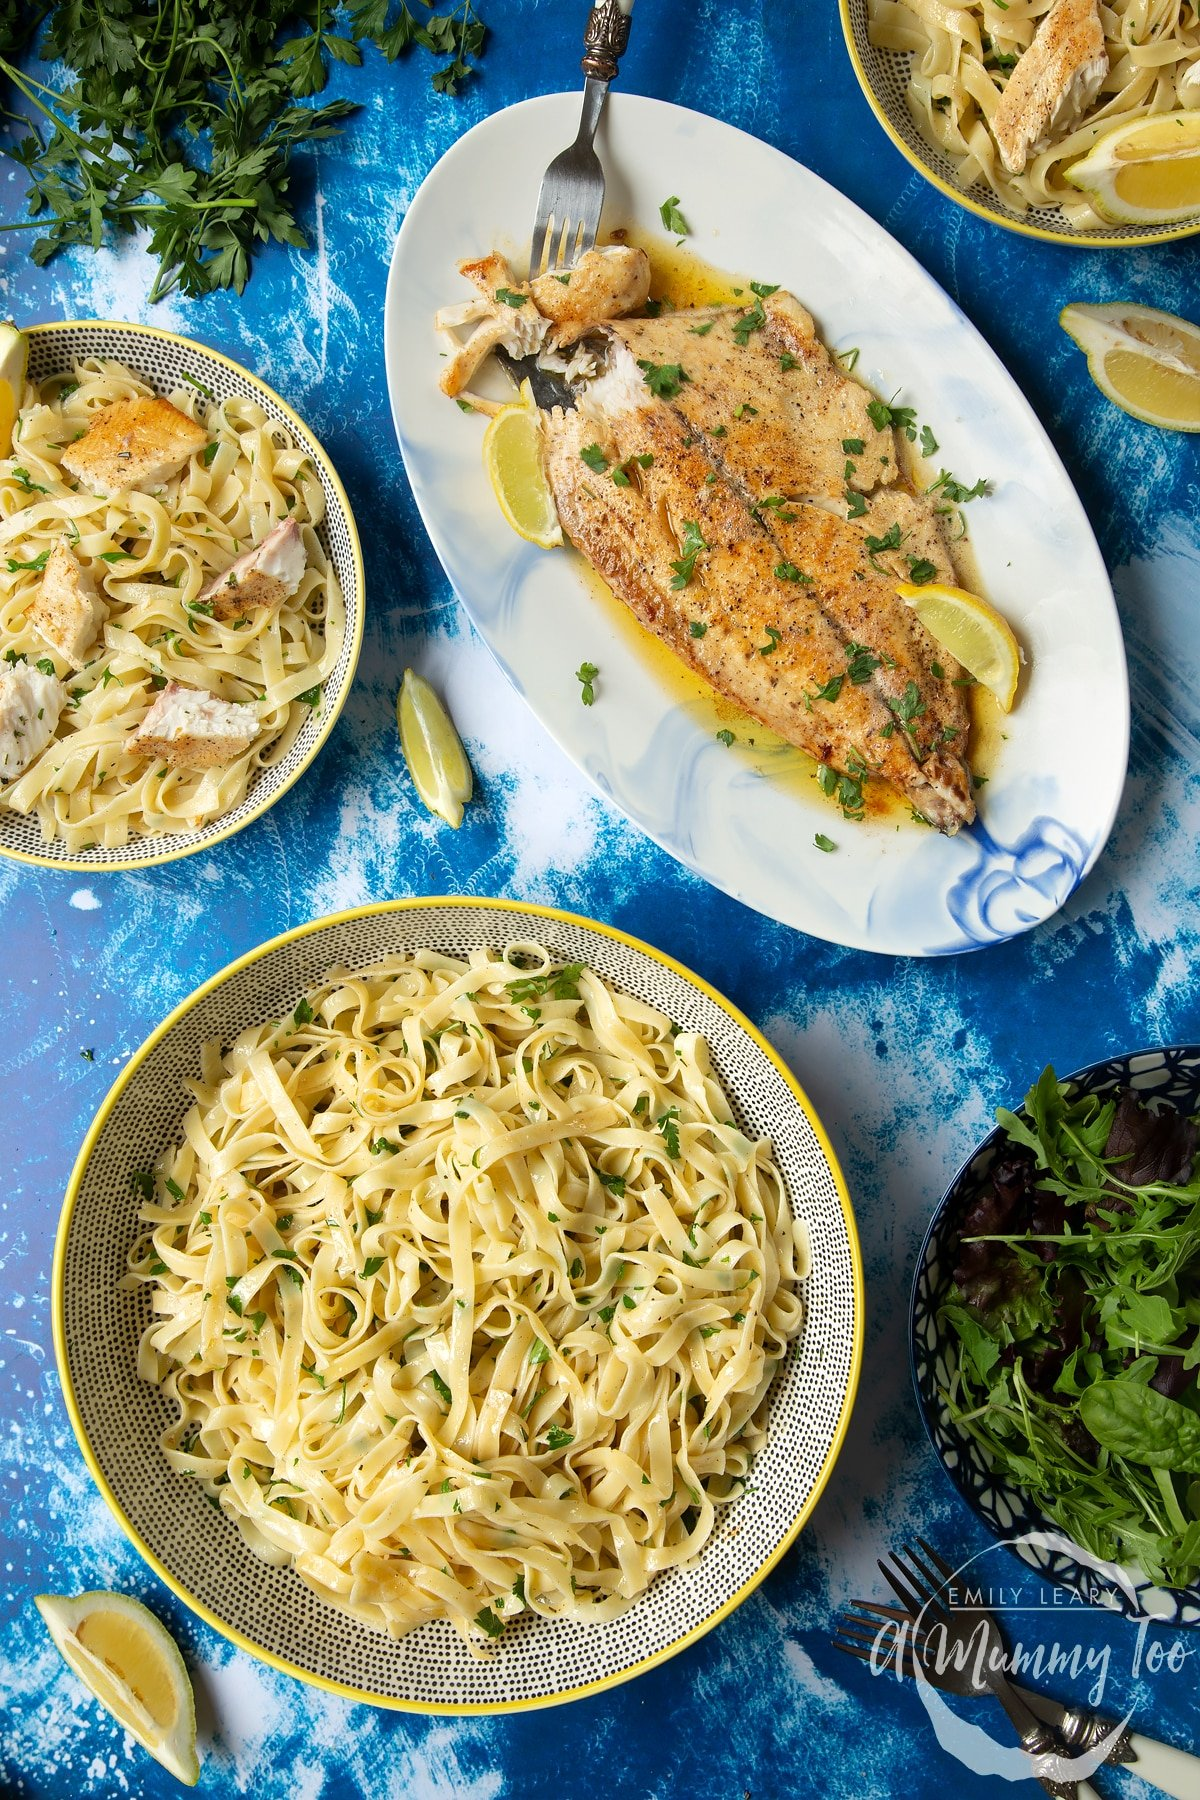 Pan-fried Yellowtail on a large oval serving dish. A fork delves into the buttery fish. A large serving bowl of herby tagliatelle is also shown.